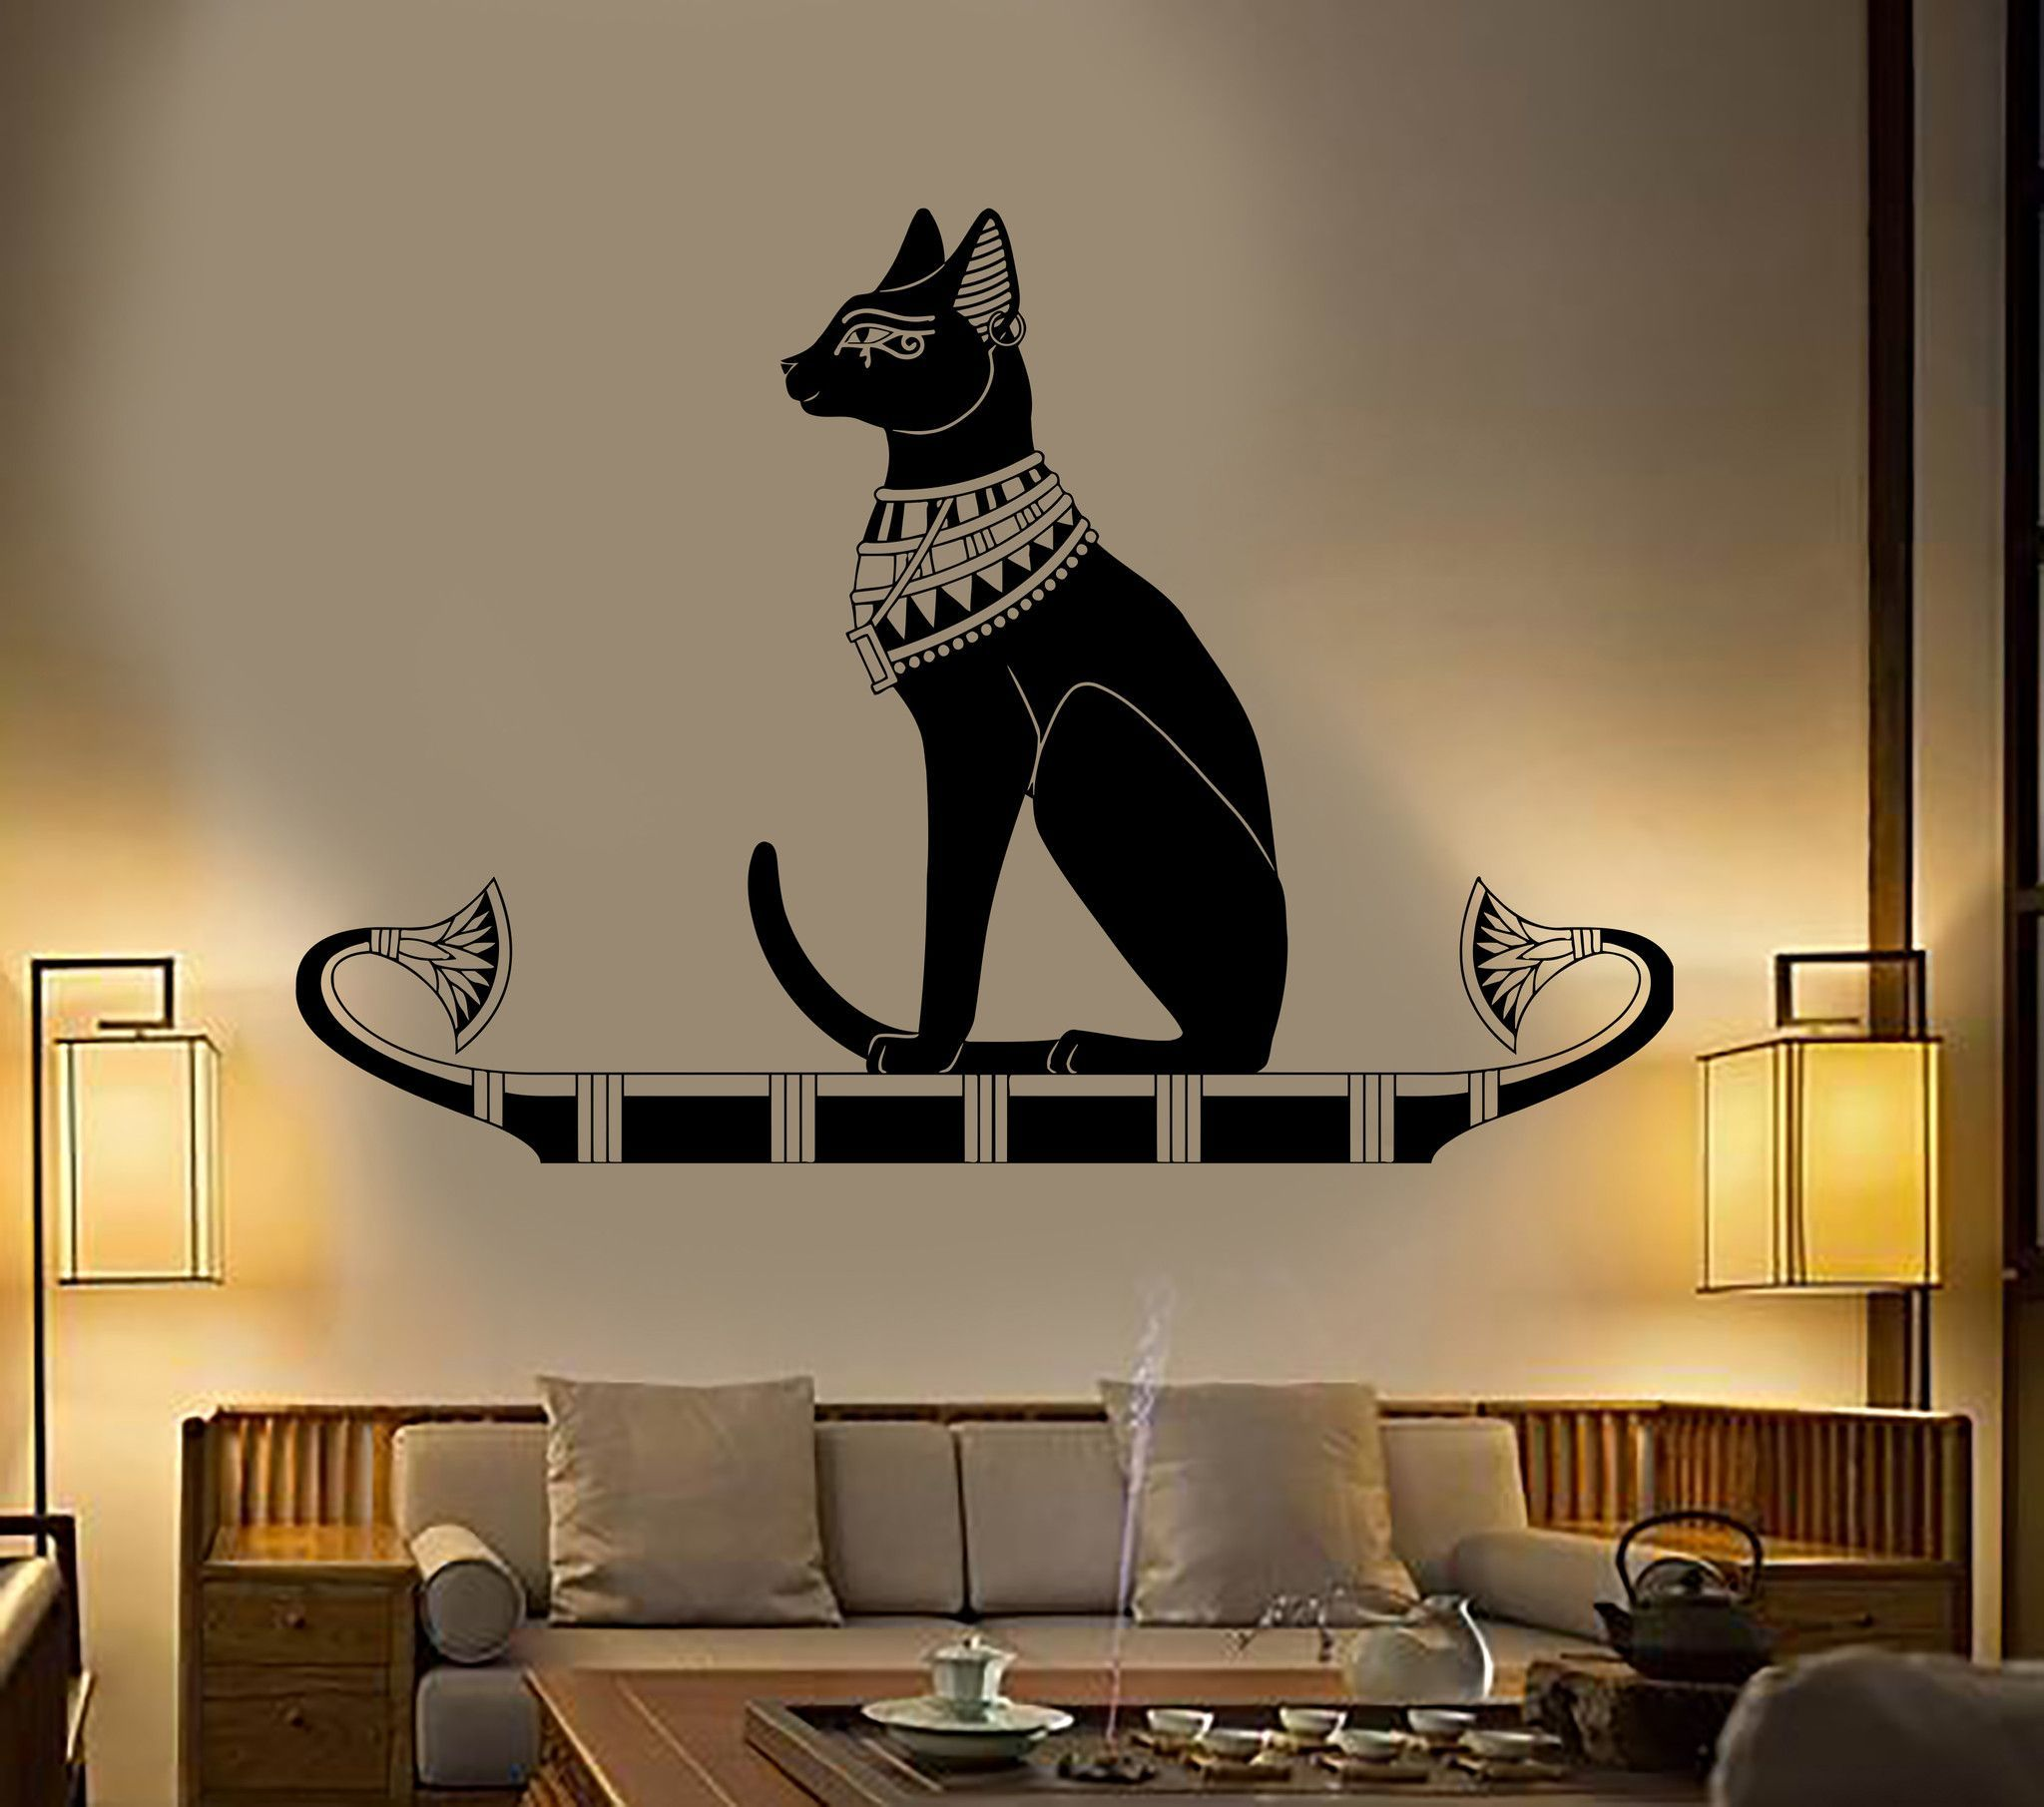 Vinyl wall decal ancient egypt egyptian cat god bastet stickers vinyl wall decal ancient egypt egyptian cat god bastet stickers unique gift 384ig amipublicfo Gallery